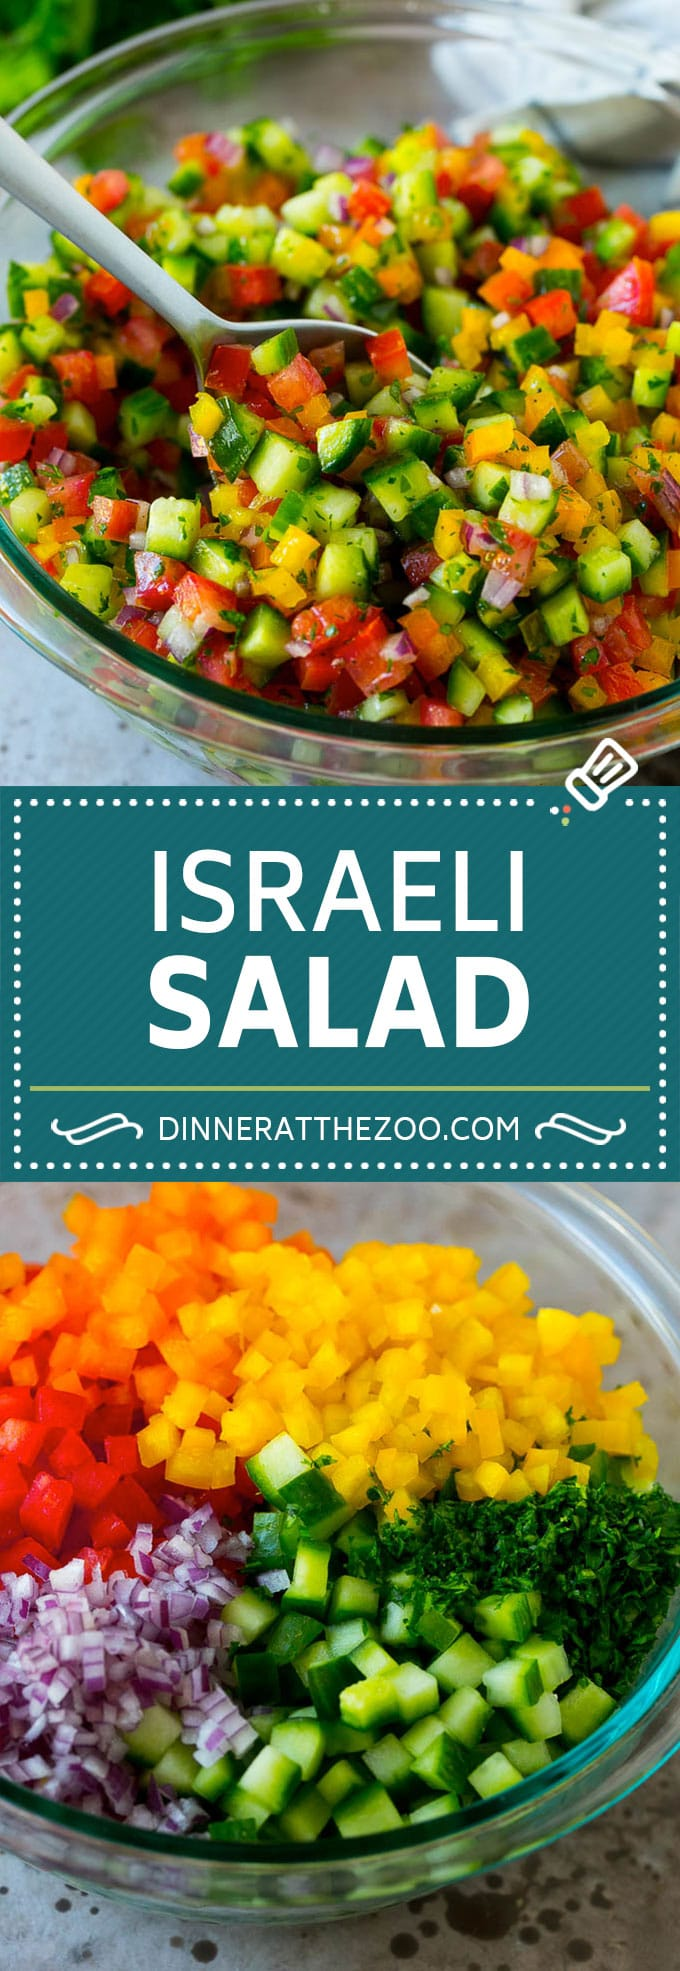 Israeli Salad Recipe | Cucumber Salad | Tomato Salad | Chopped Salad #salad #cleaneating #healthy #glutenfree #lowcarb #keto #sidedish #lunch #dinneratthezoo